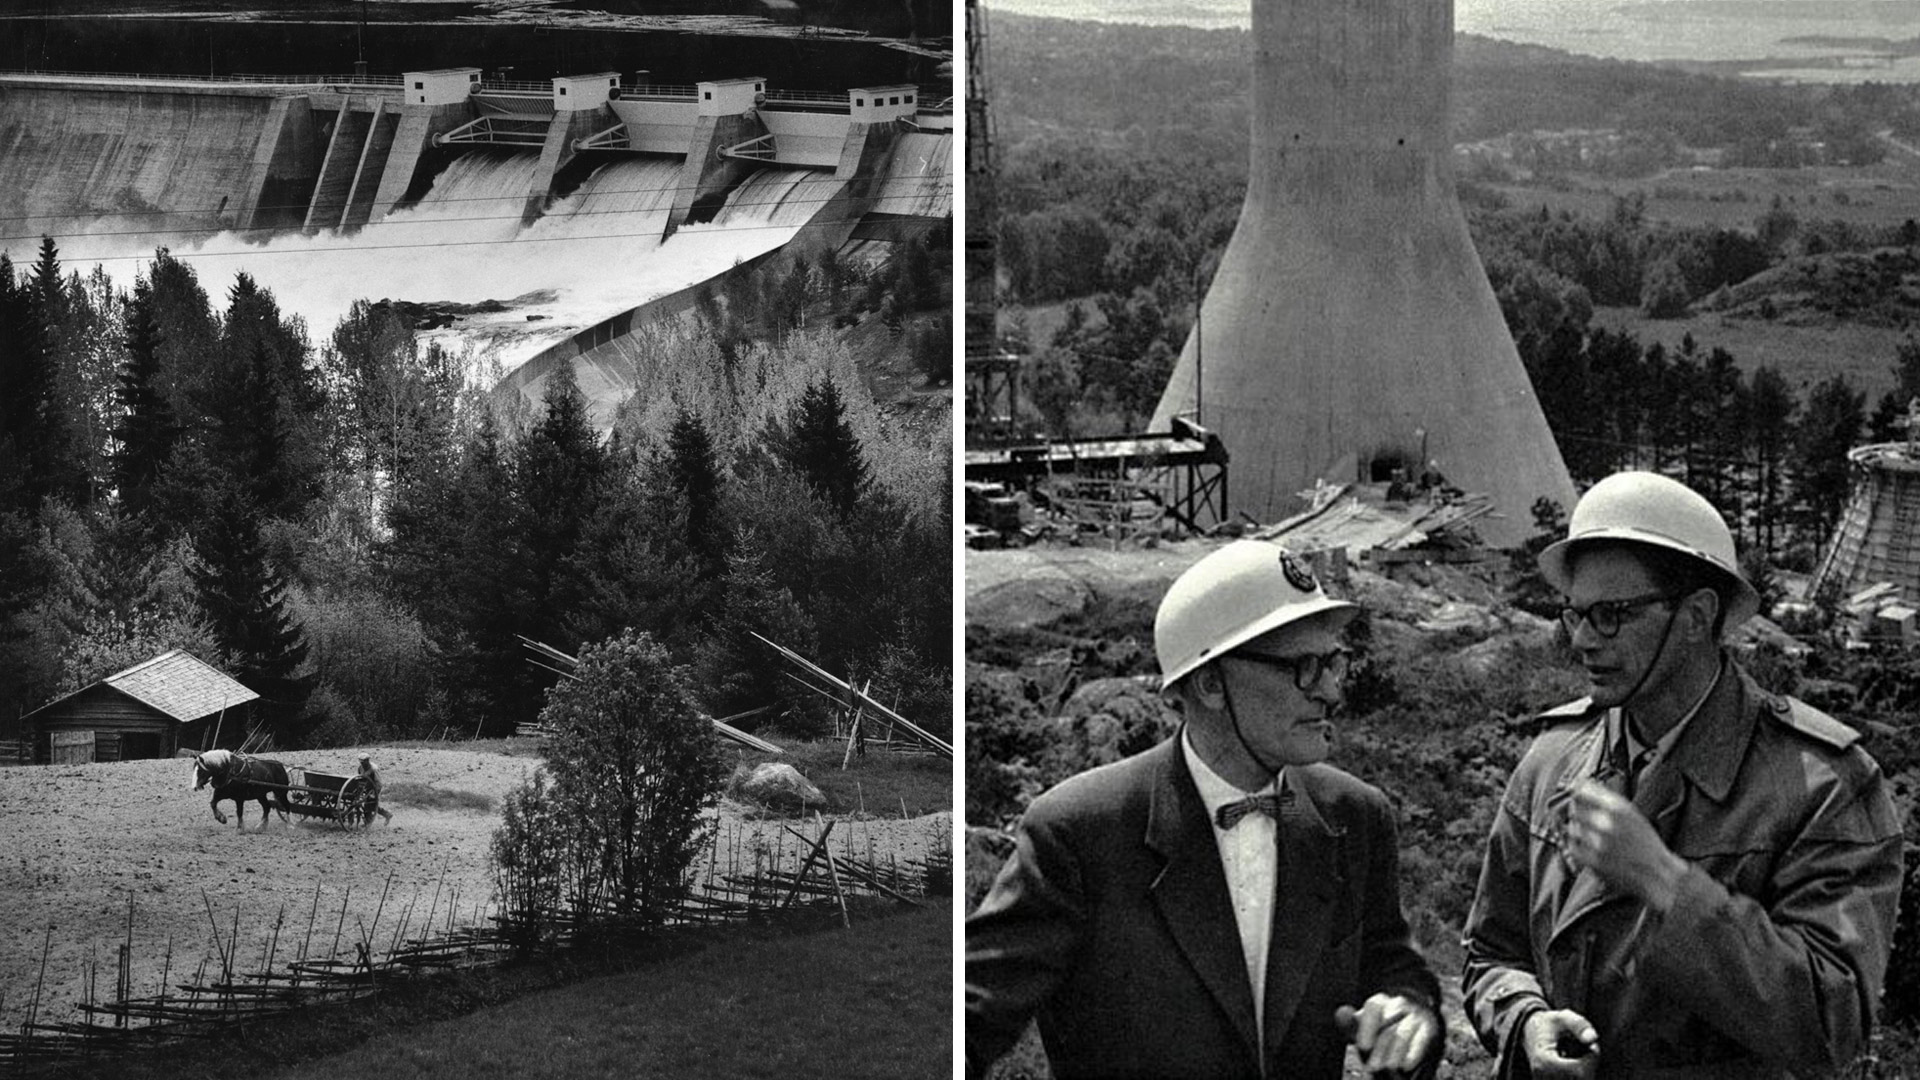 Black and white photos - a man and a horse at the Stadsforsens hydro power plant, and two men smoking at Stenungsundsverket. Photo: Lennart Nilsson